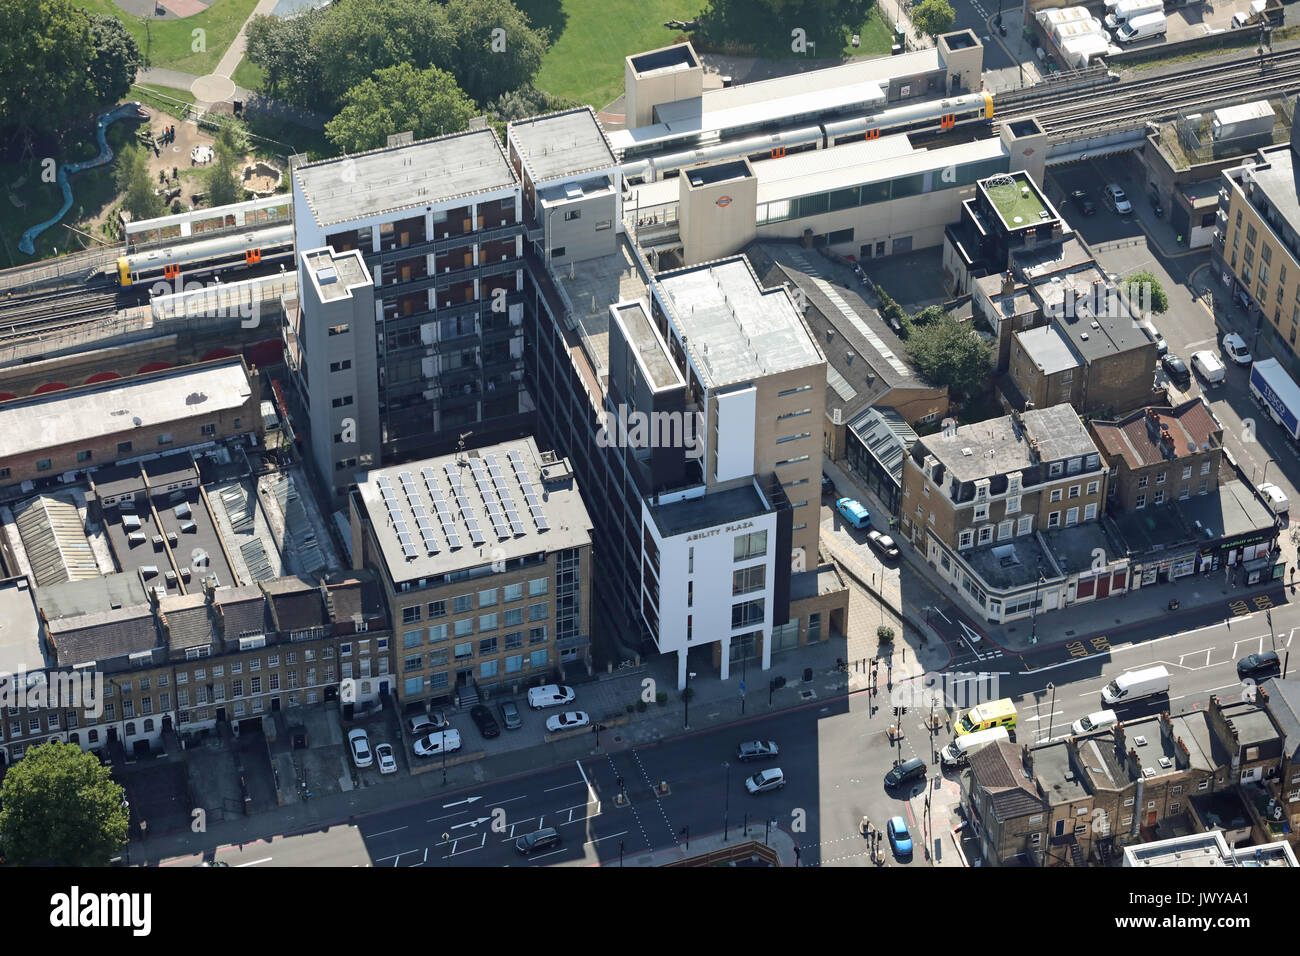 aerial view of Ability Plaza & Haggerston Station, London E8, UK - Stock Image